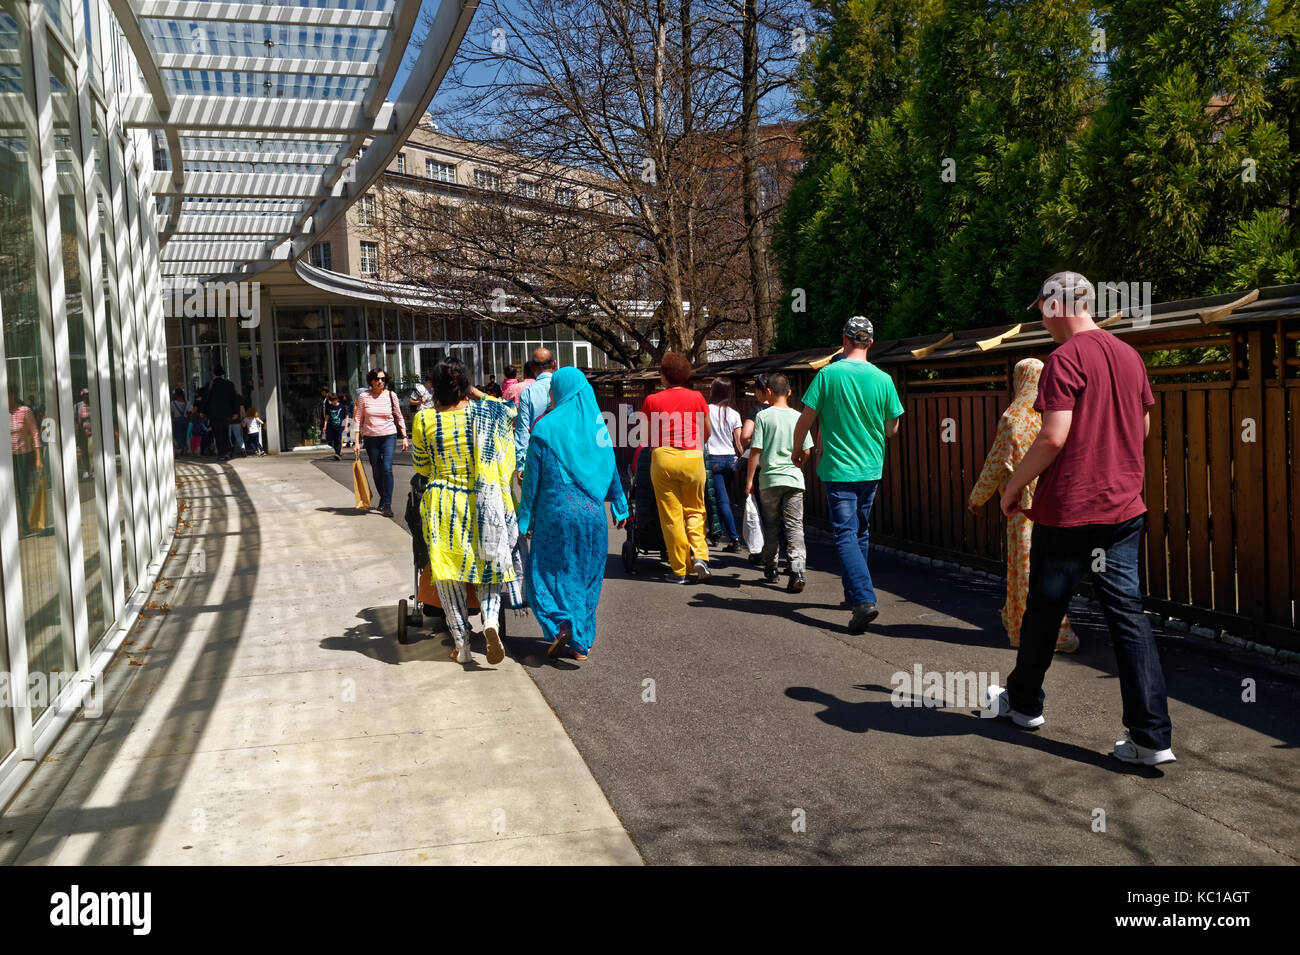 Visitors walking through the Brooklyn Botanic Gardens on a Spring day. - Stock Image